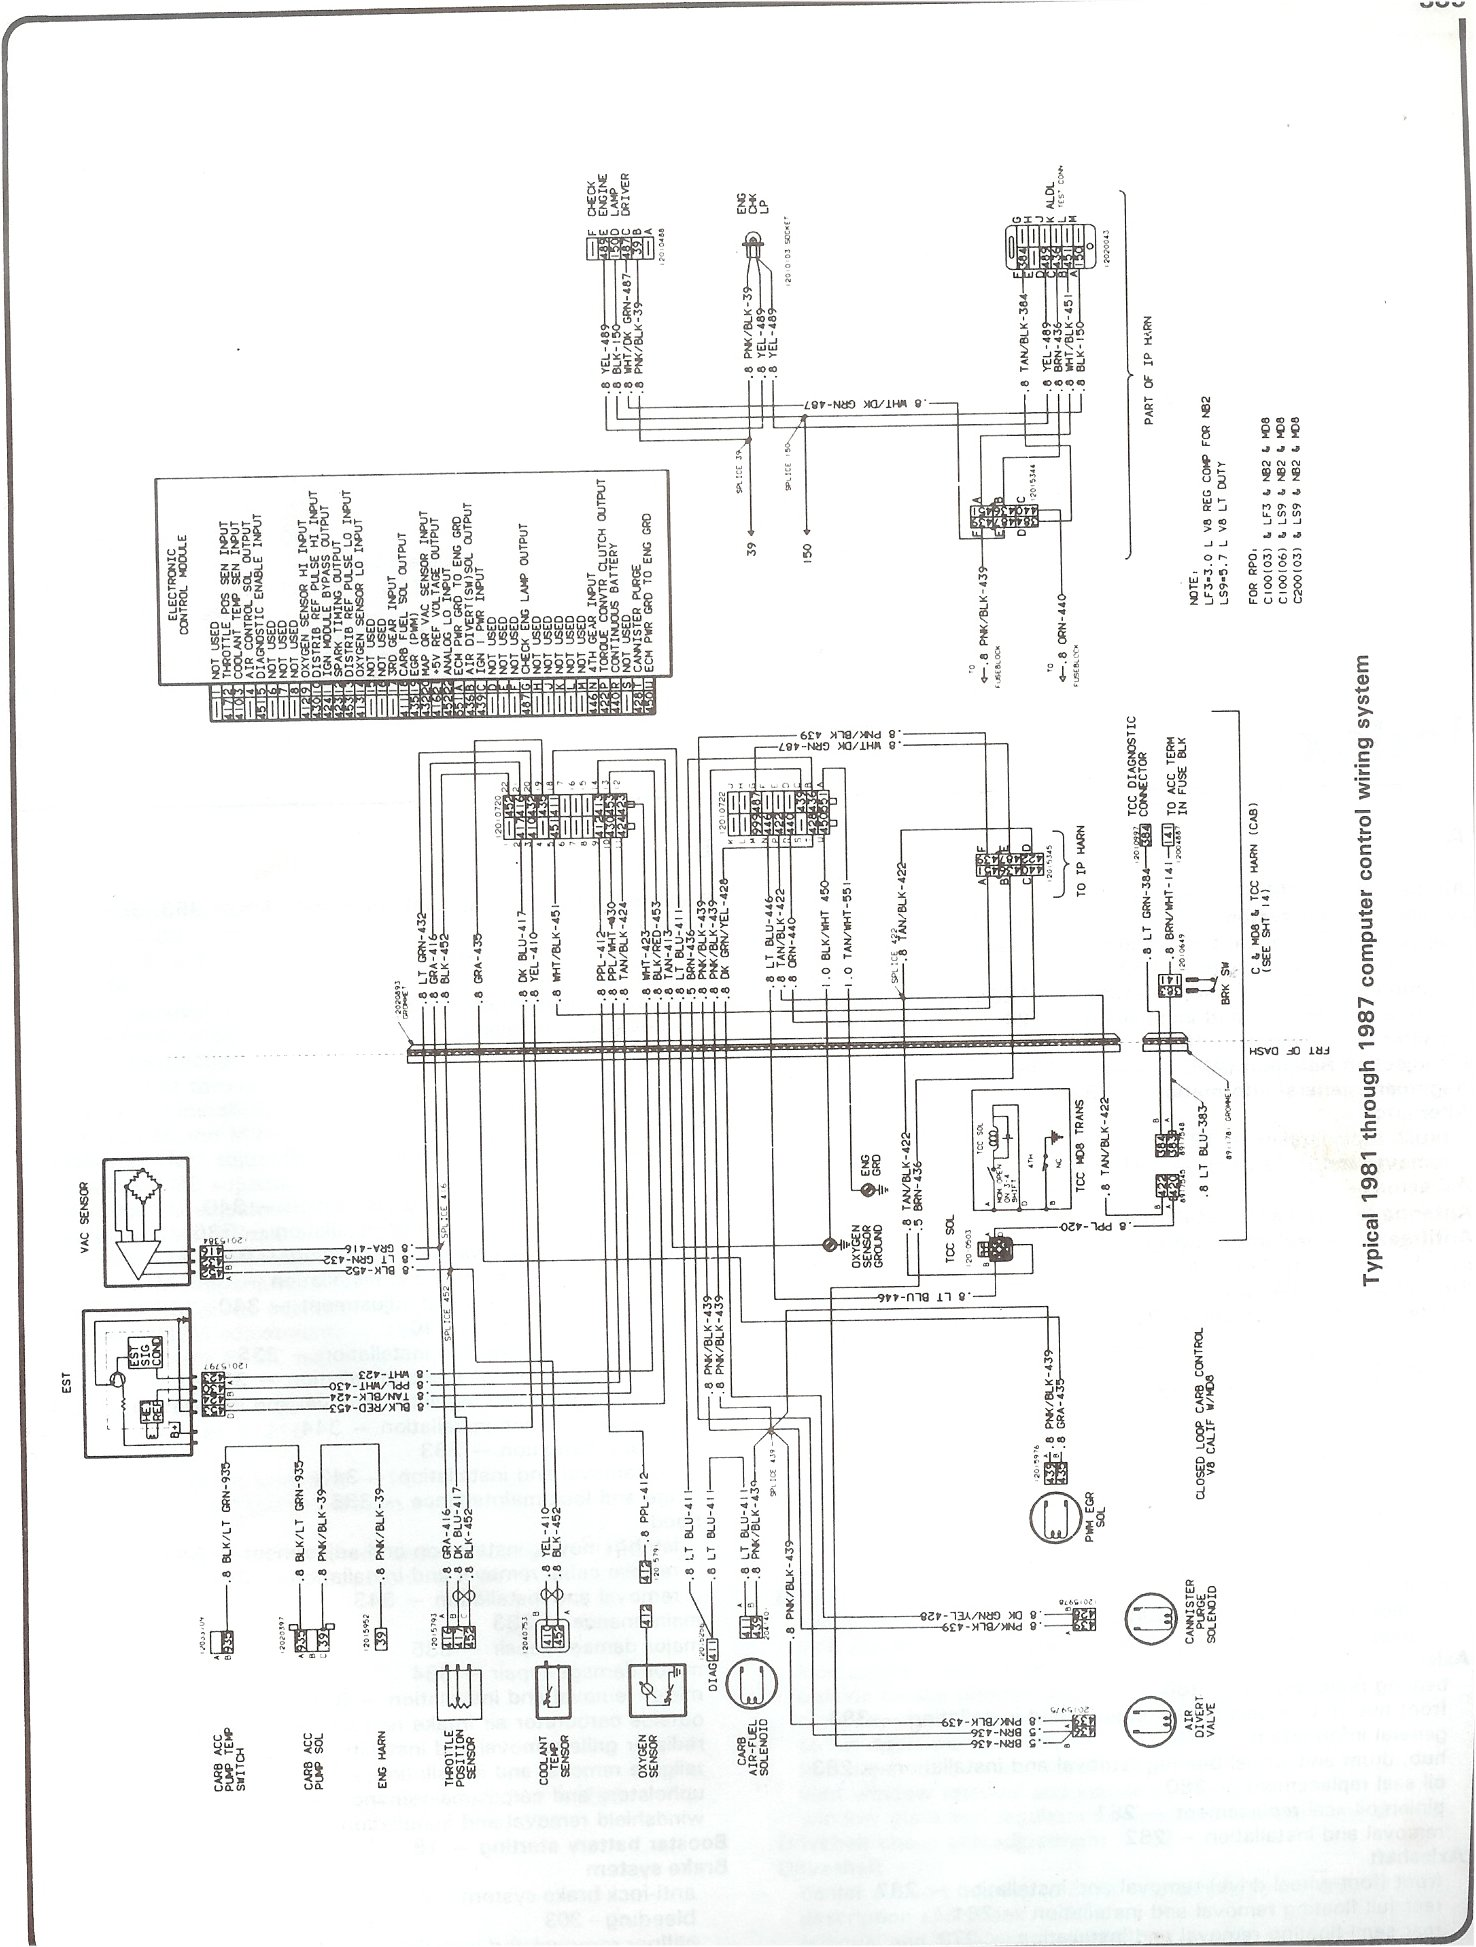 4 8 Silverado Engine Diagram | Wiring Diagram V Chevy Engine Wiring Diagram on